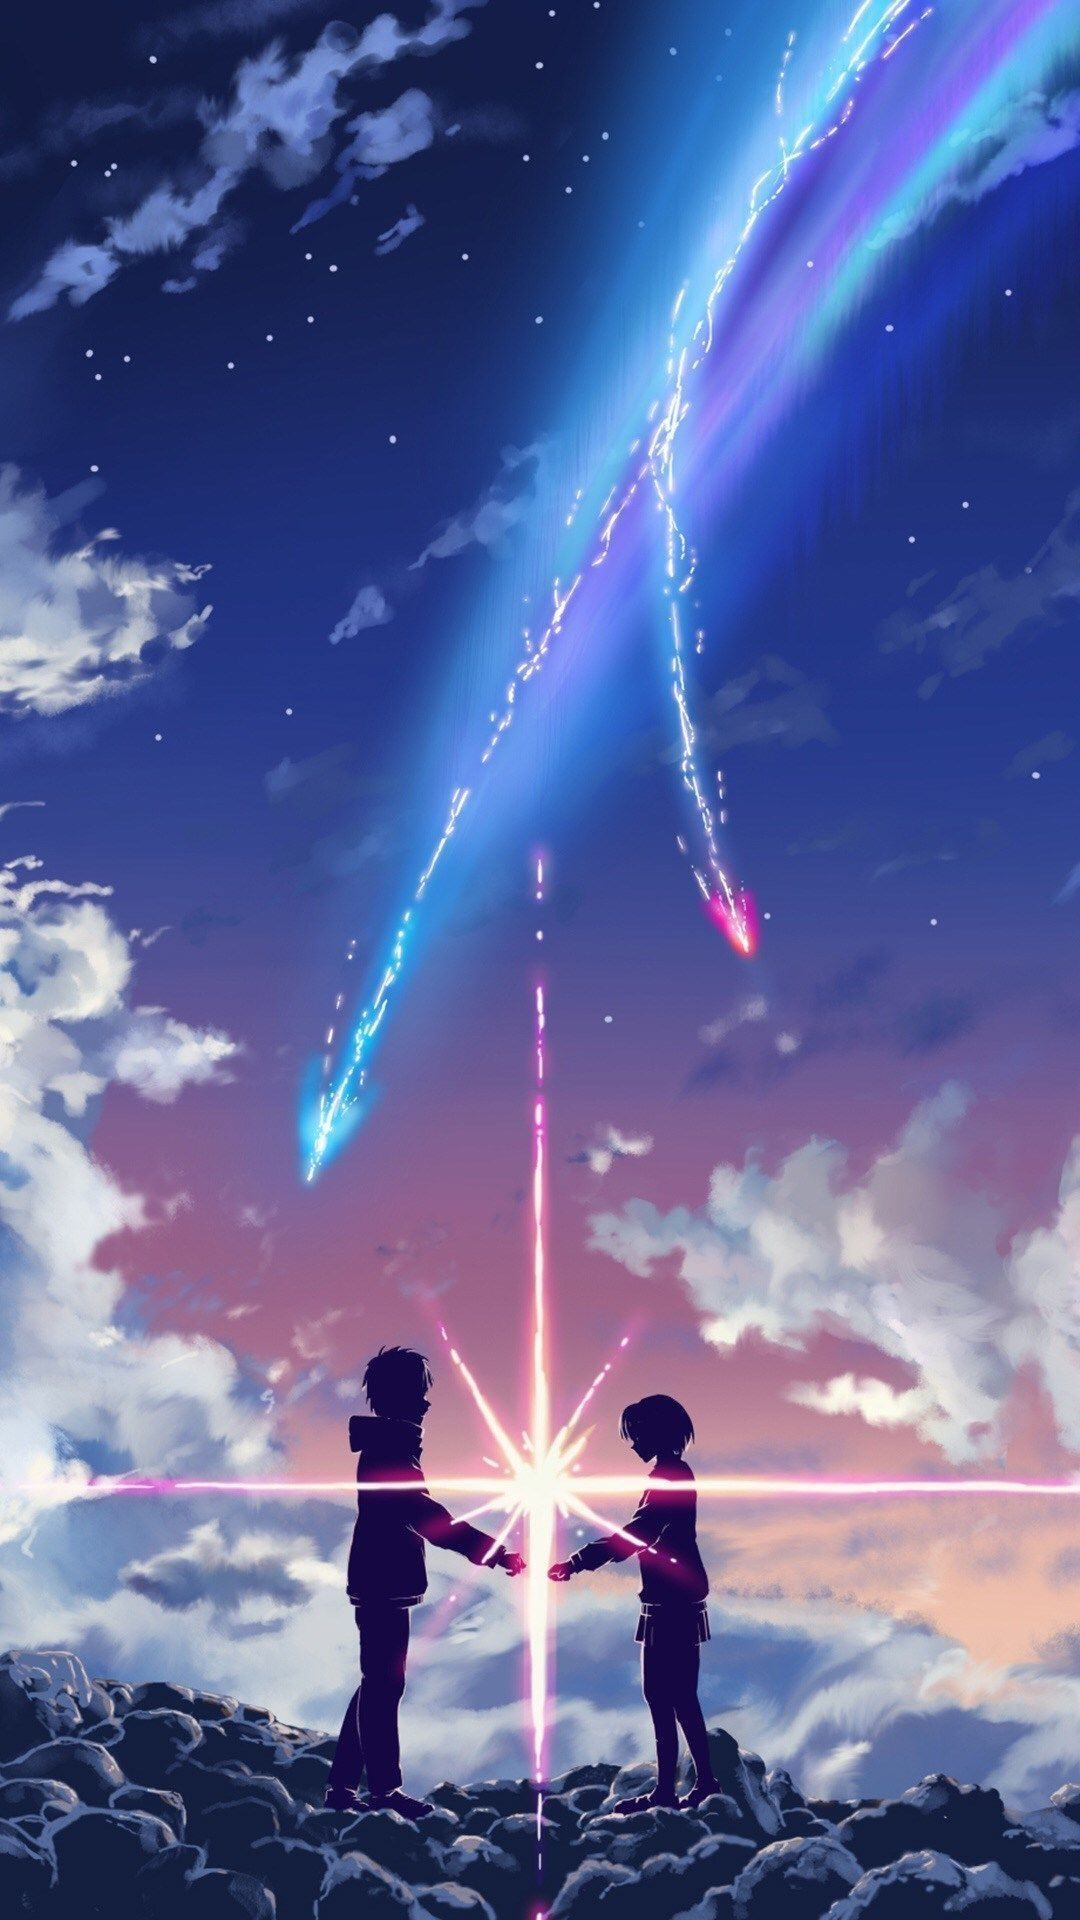 35 Pastel Aesthetic Anime Hd Wallpapers Desktop Background Android Iphone 1080p 4k 1080x1920 2020